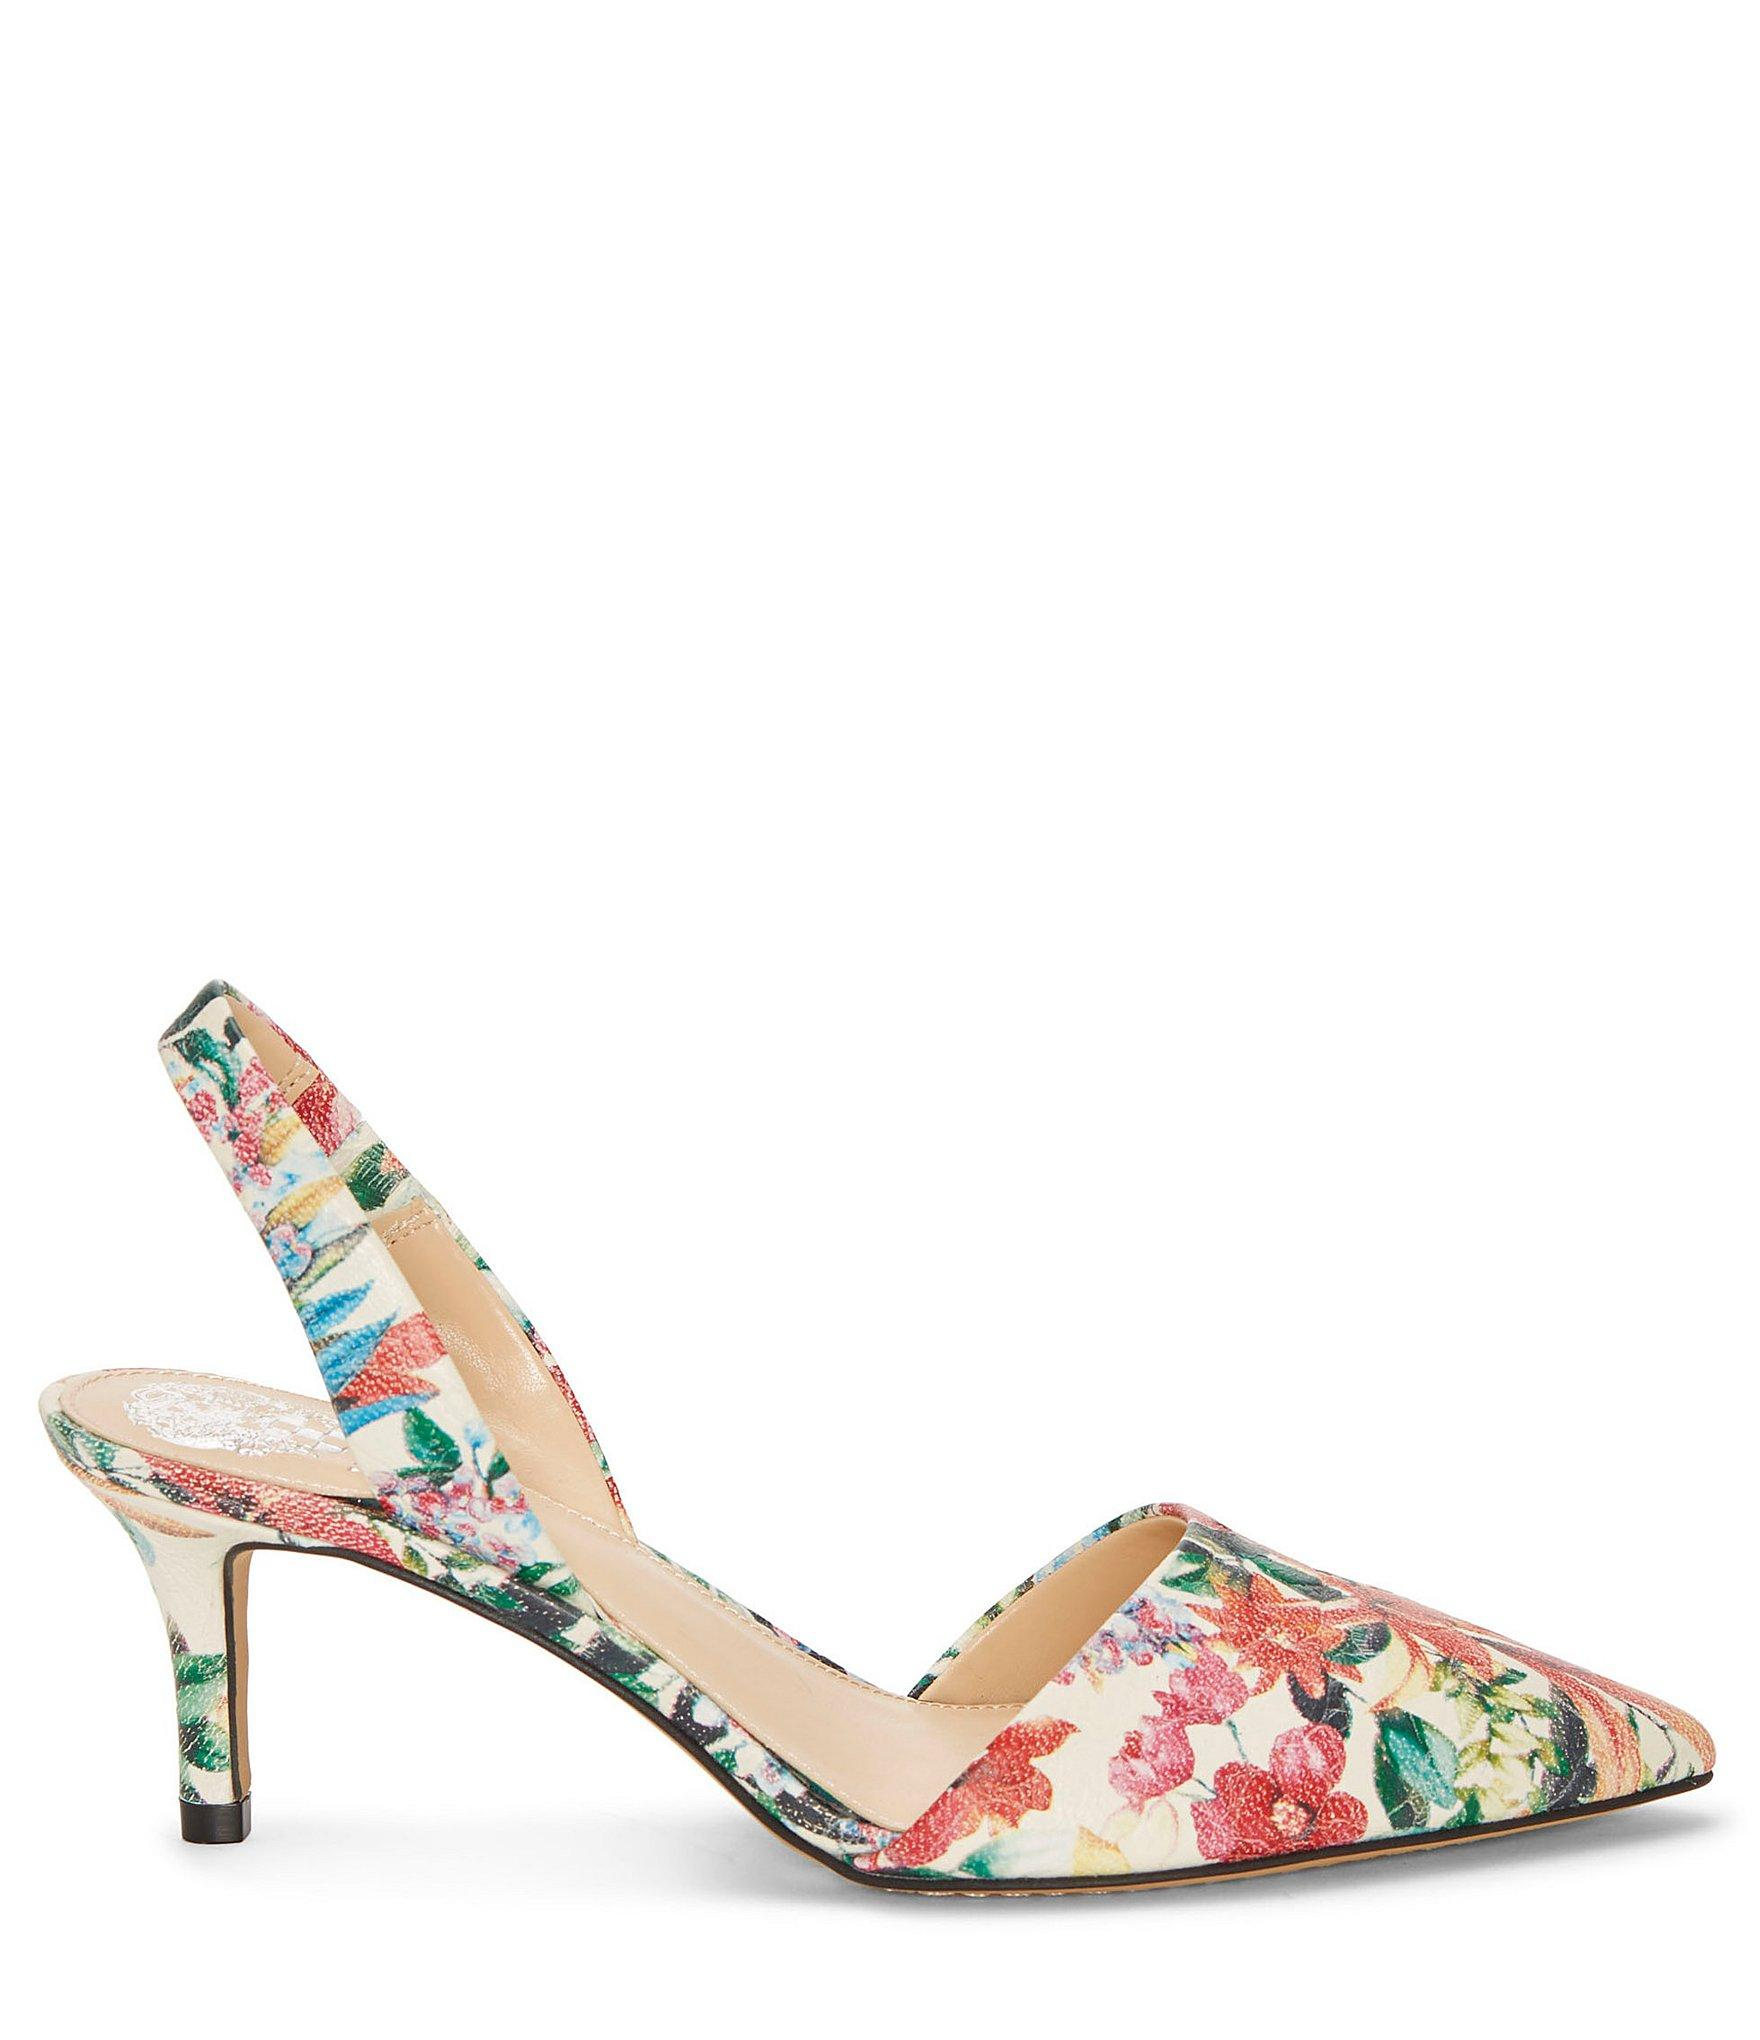 b8497fe24fb3 Vince Camuto - Multicolor Kolissa Floral Leather Dress Pumps - Lyst. View  fullscreen